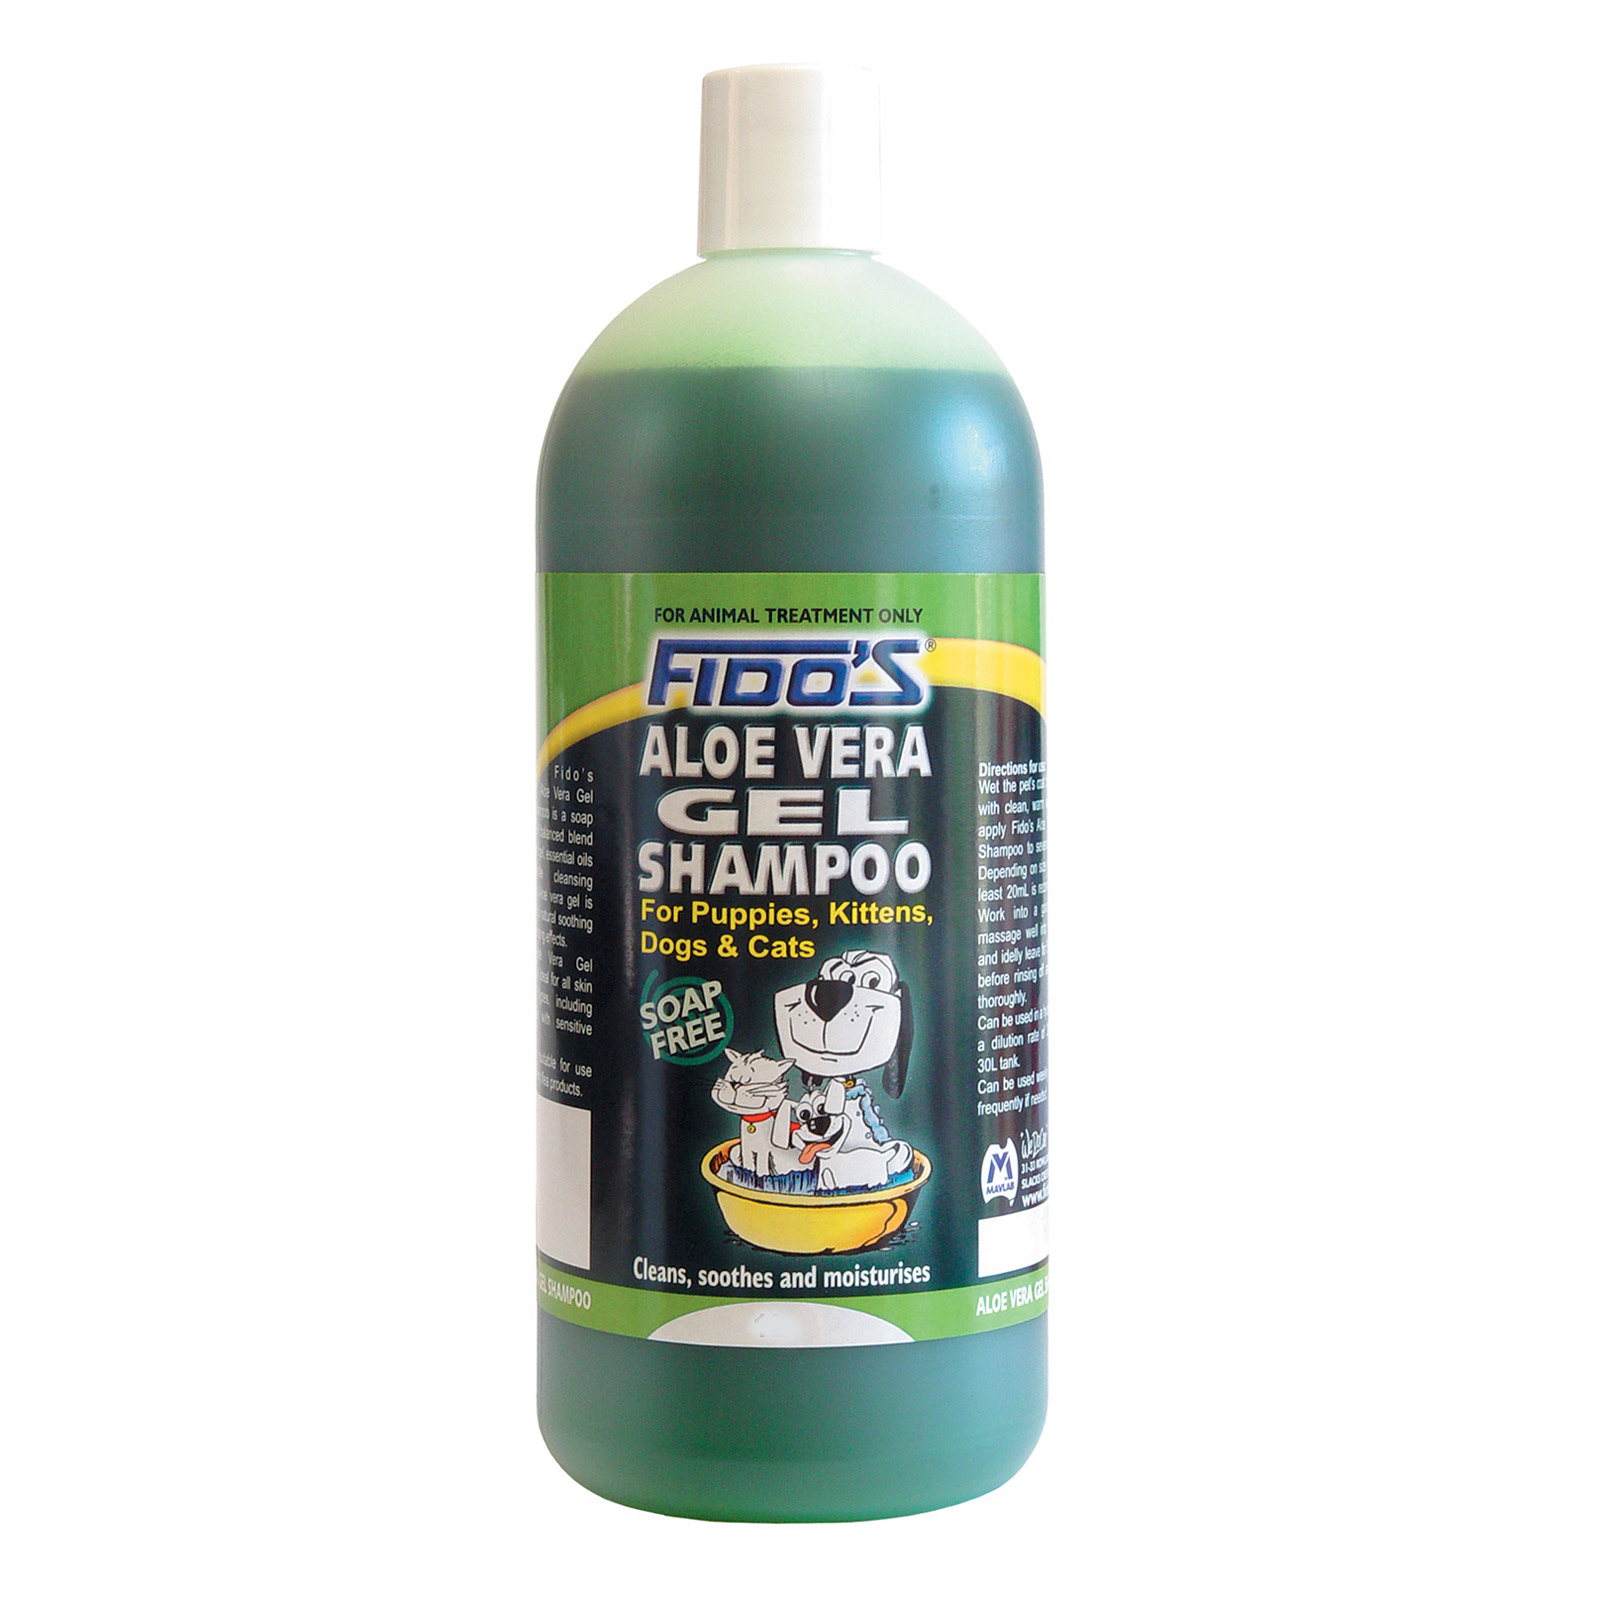 Fidos Aloe Vera Shampoo For Dogs